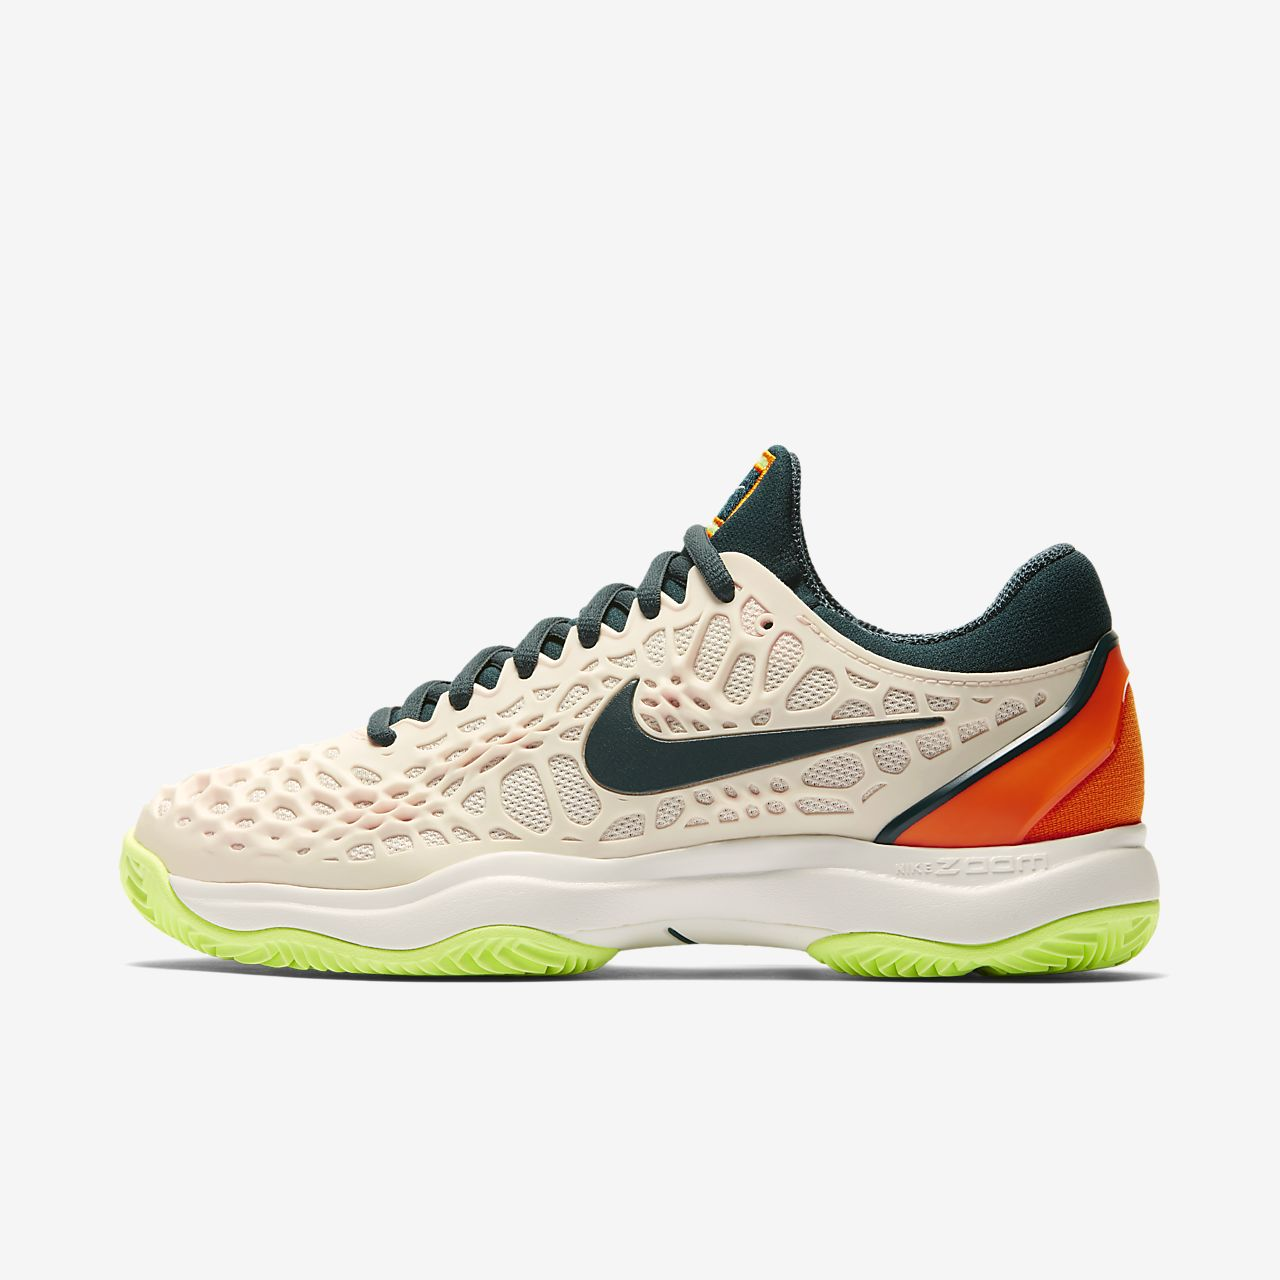 Clay Femme Chaussure Pour Zoom Tennis Be Nike Cage De 3 Rw1HRqY